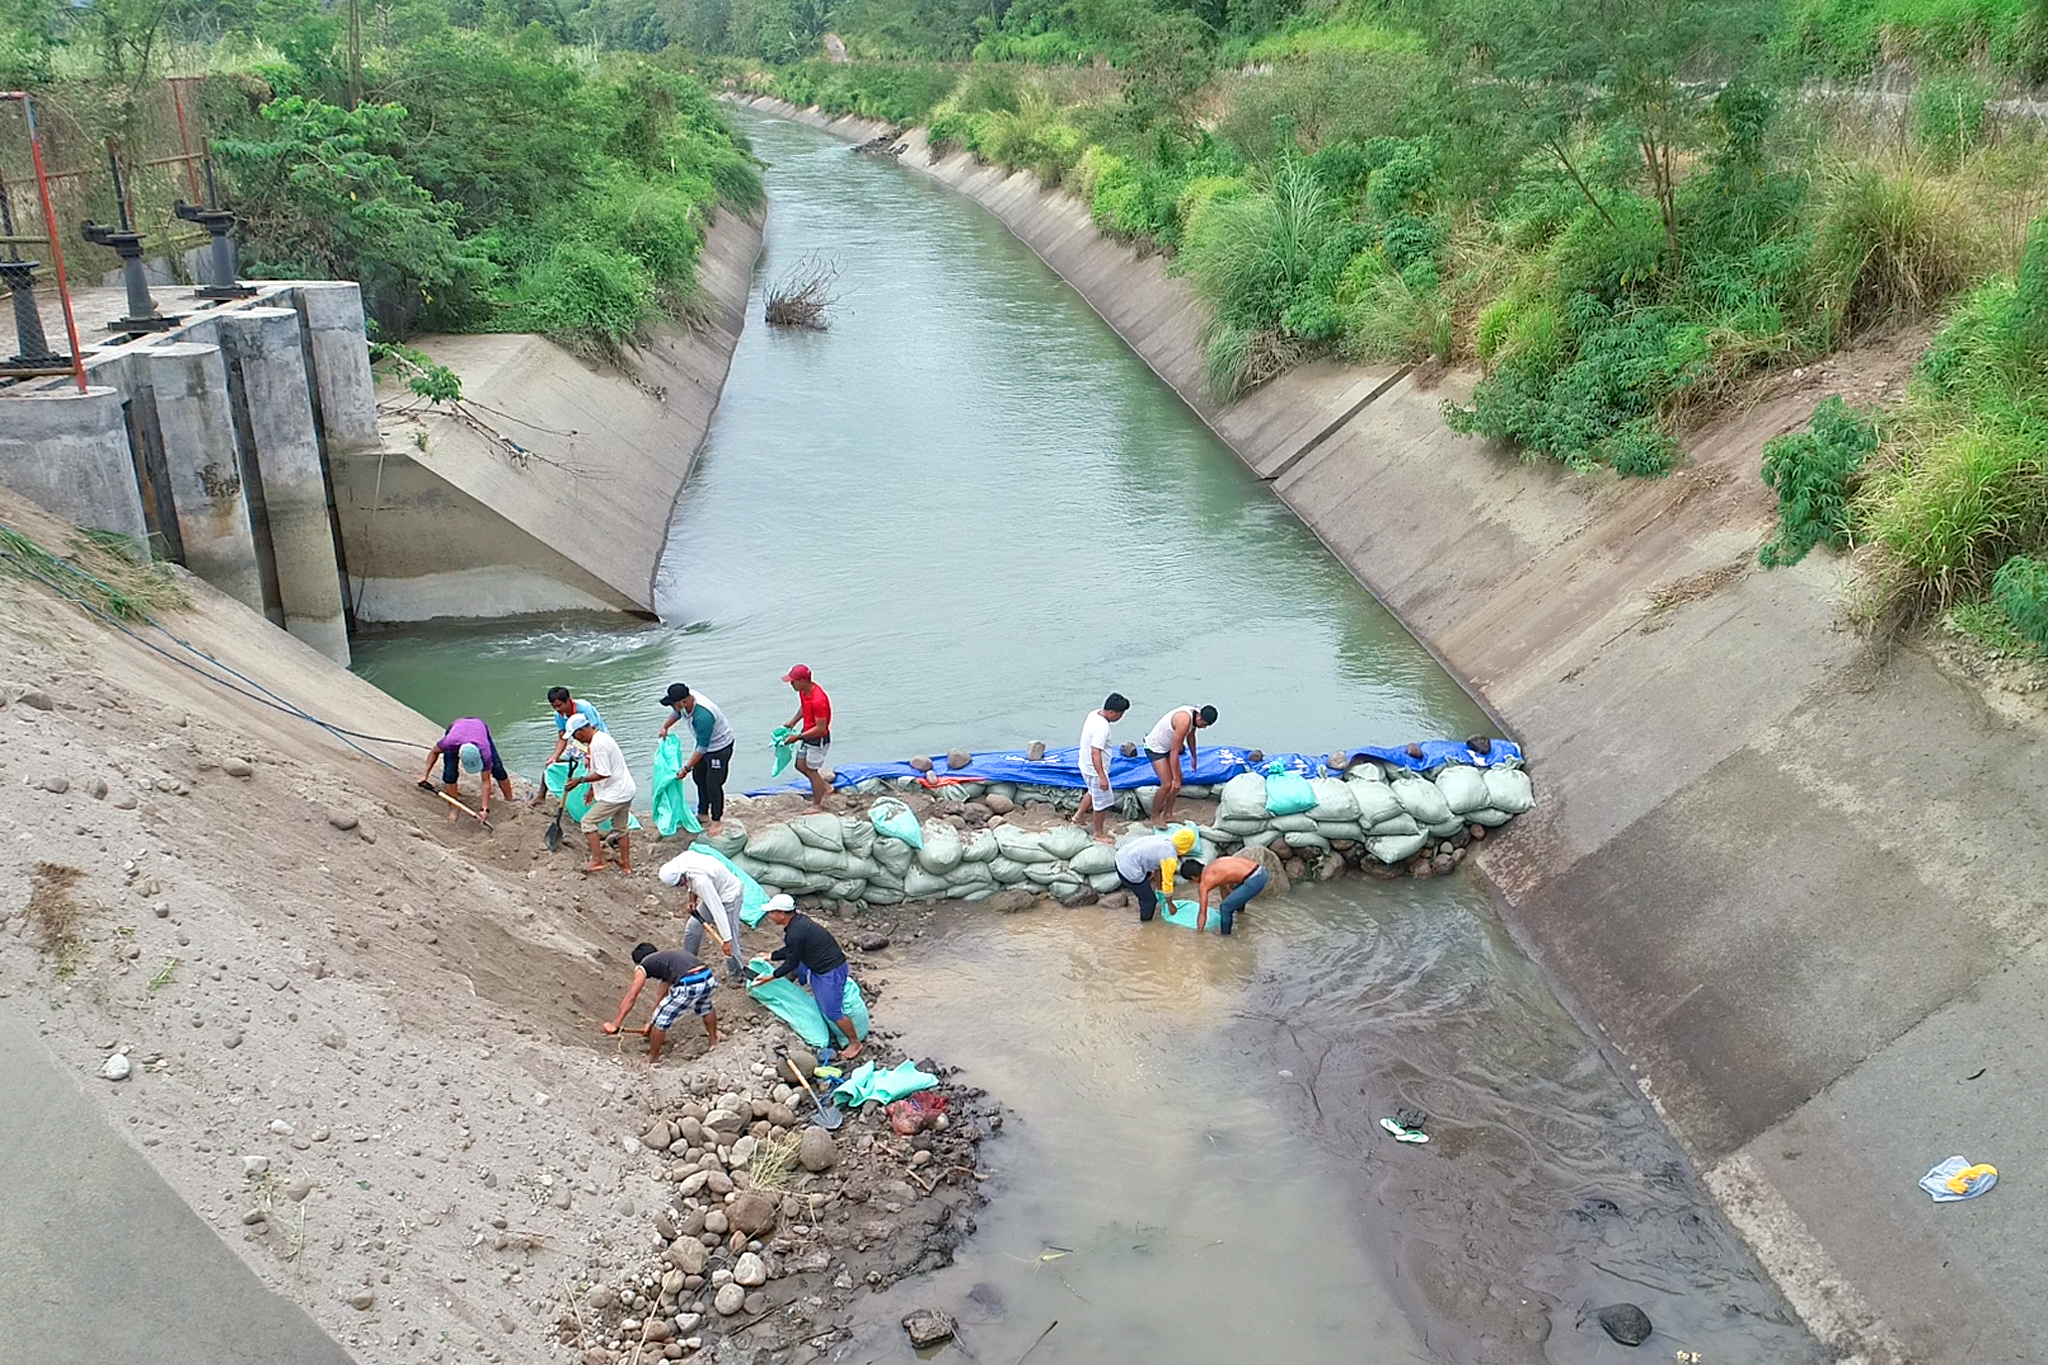 NIA personnel together with UCRIS Tabuk and Pinukpuk Federation of Irrigators Associations had to sandbag on March 14 and 15, 2021 along the main canal to barricade water from flowing towards the siphon and divert it to the wasteway into the Chico River.  Photo courtesy of NIA Kalinga IMO